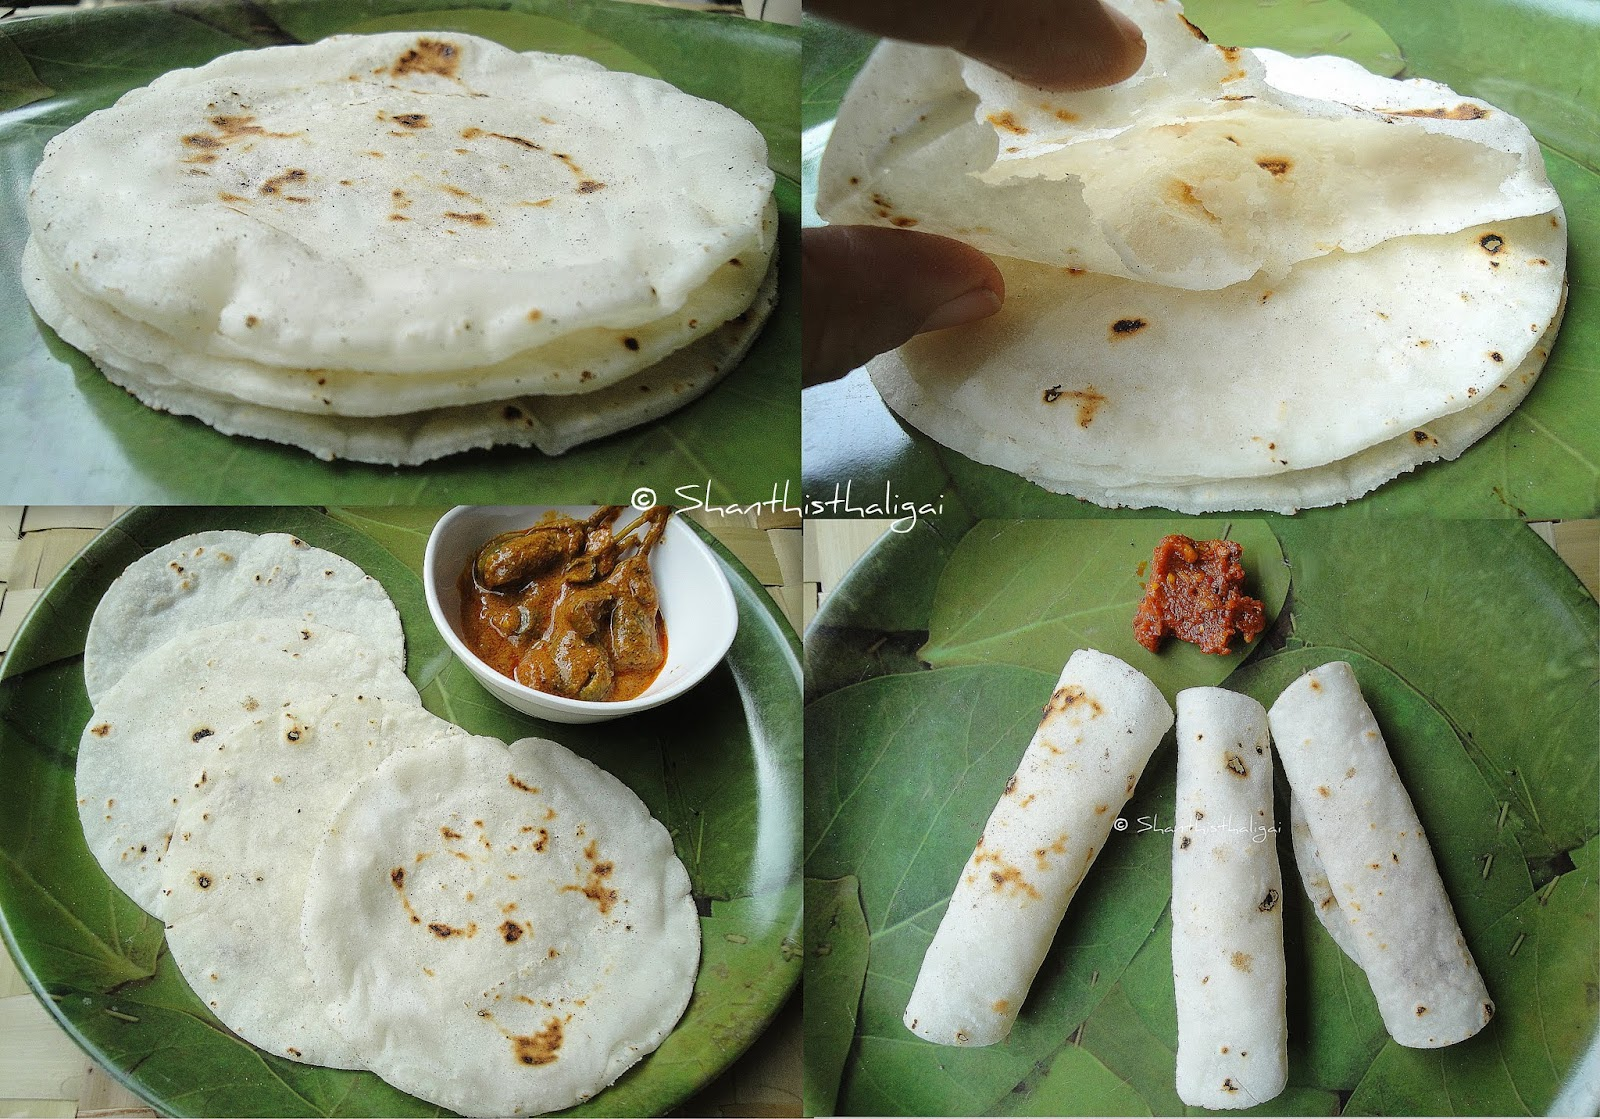 HOW TO MAKE AKKI ROTI, HOW TO MAKE SOFT RICE ROTI ,HOW TO MAKE TANDLACHI BHAKRI , HOW TO MAKE ARI PATHIRI